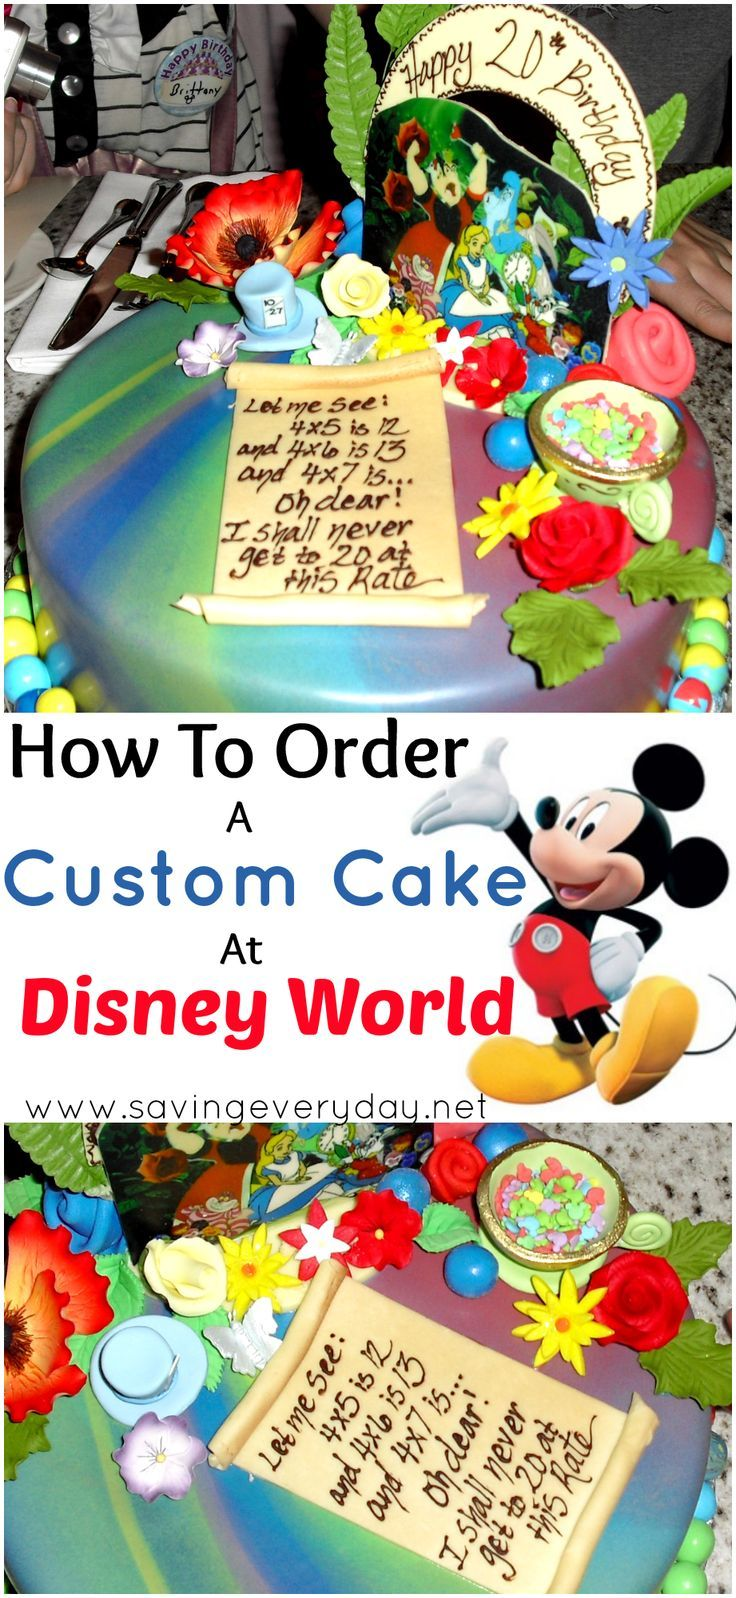 How To Have A Custom Cake Made At Disney World Custom Cake And